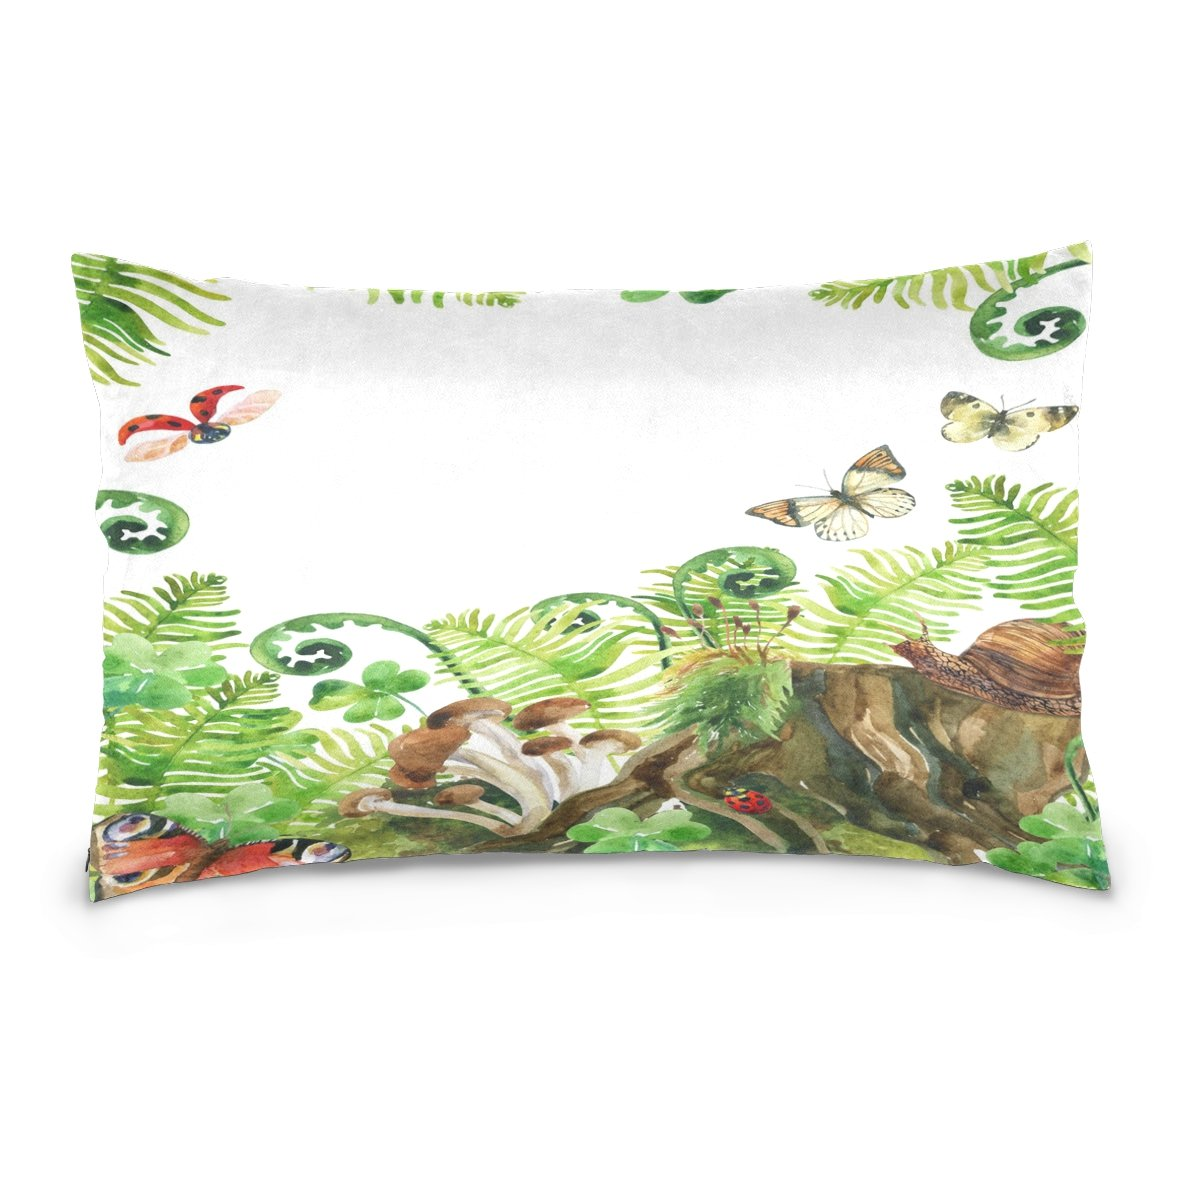 ALAZA Colorful Forest watercolor Wildlife Natural Woods Life Cotton Lint Pillow Case,Double-sided Printing Home Decor Pillowcase Size 16''x24'',for Bedroom Women Girl Boy